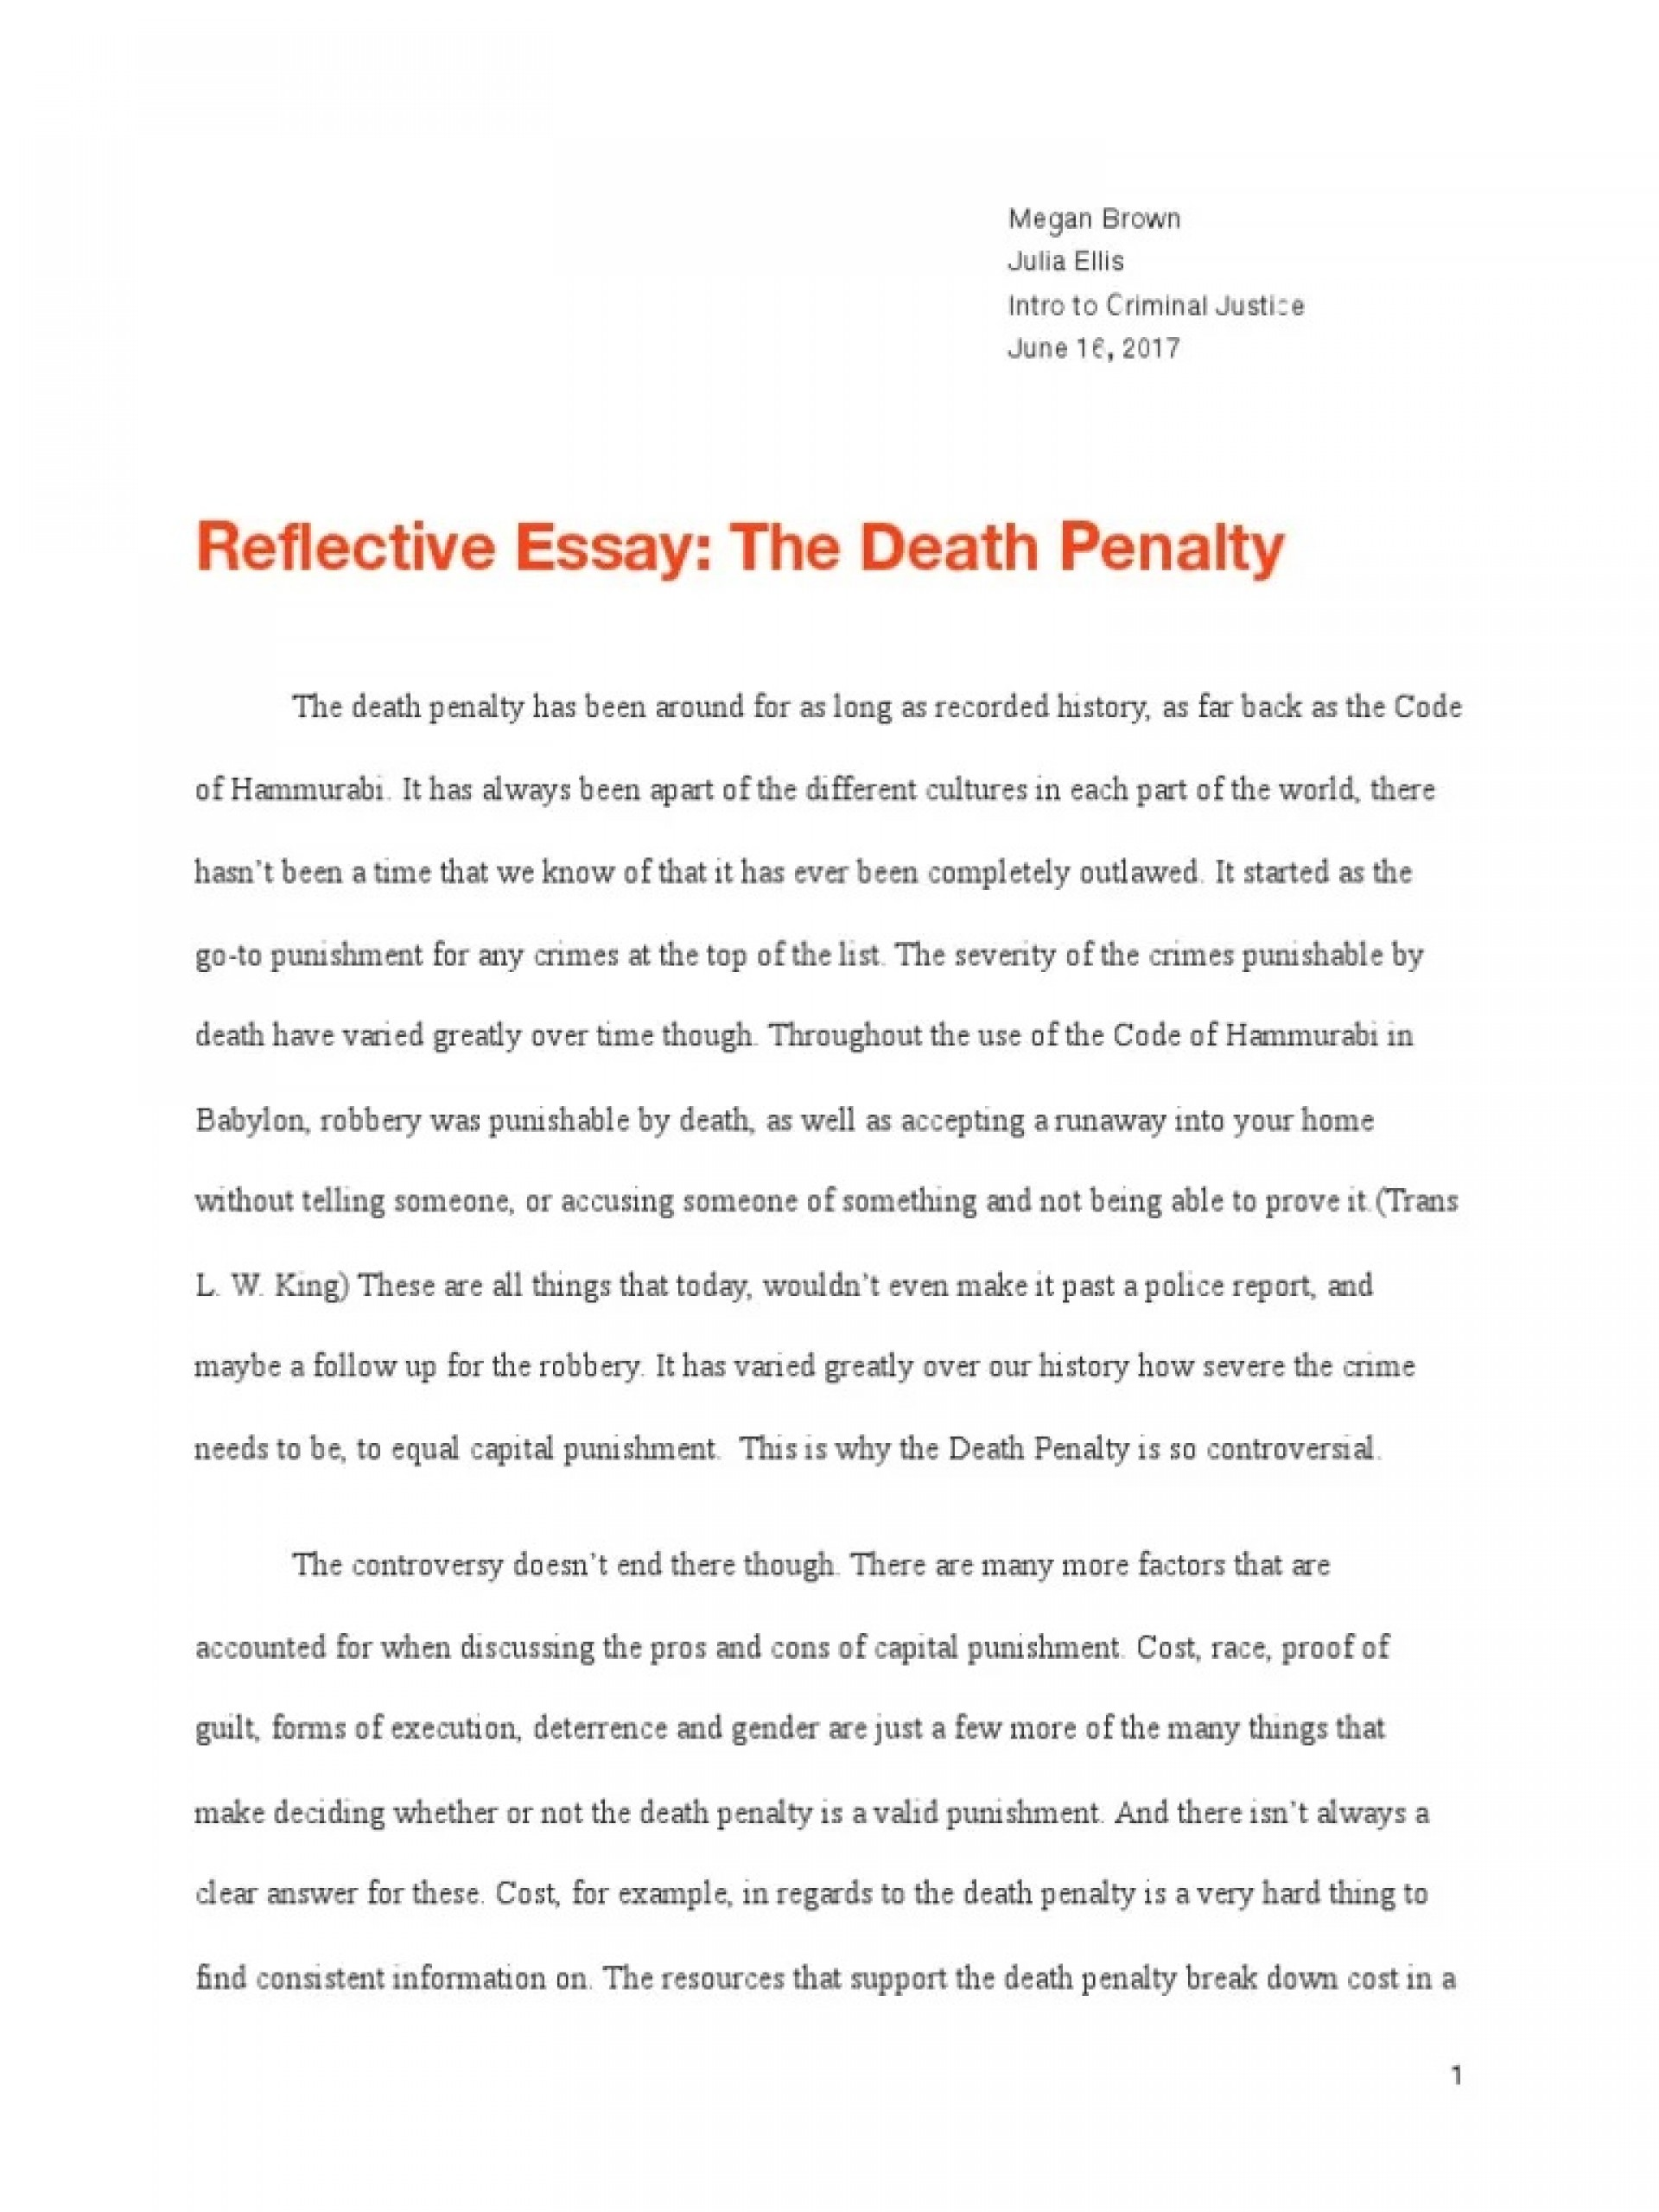 001 Unbelievable Death Penalty Essay Highest Quality  Persuasive Introduction In The Philippine Tagalog Pro1920